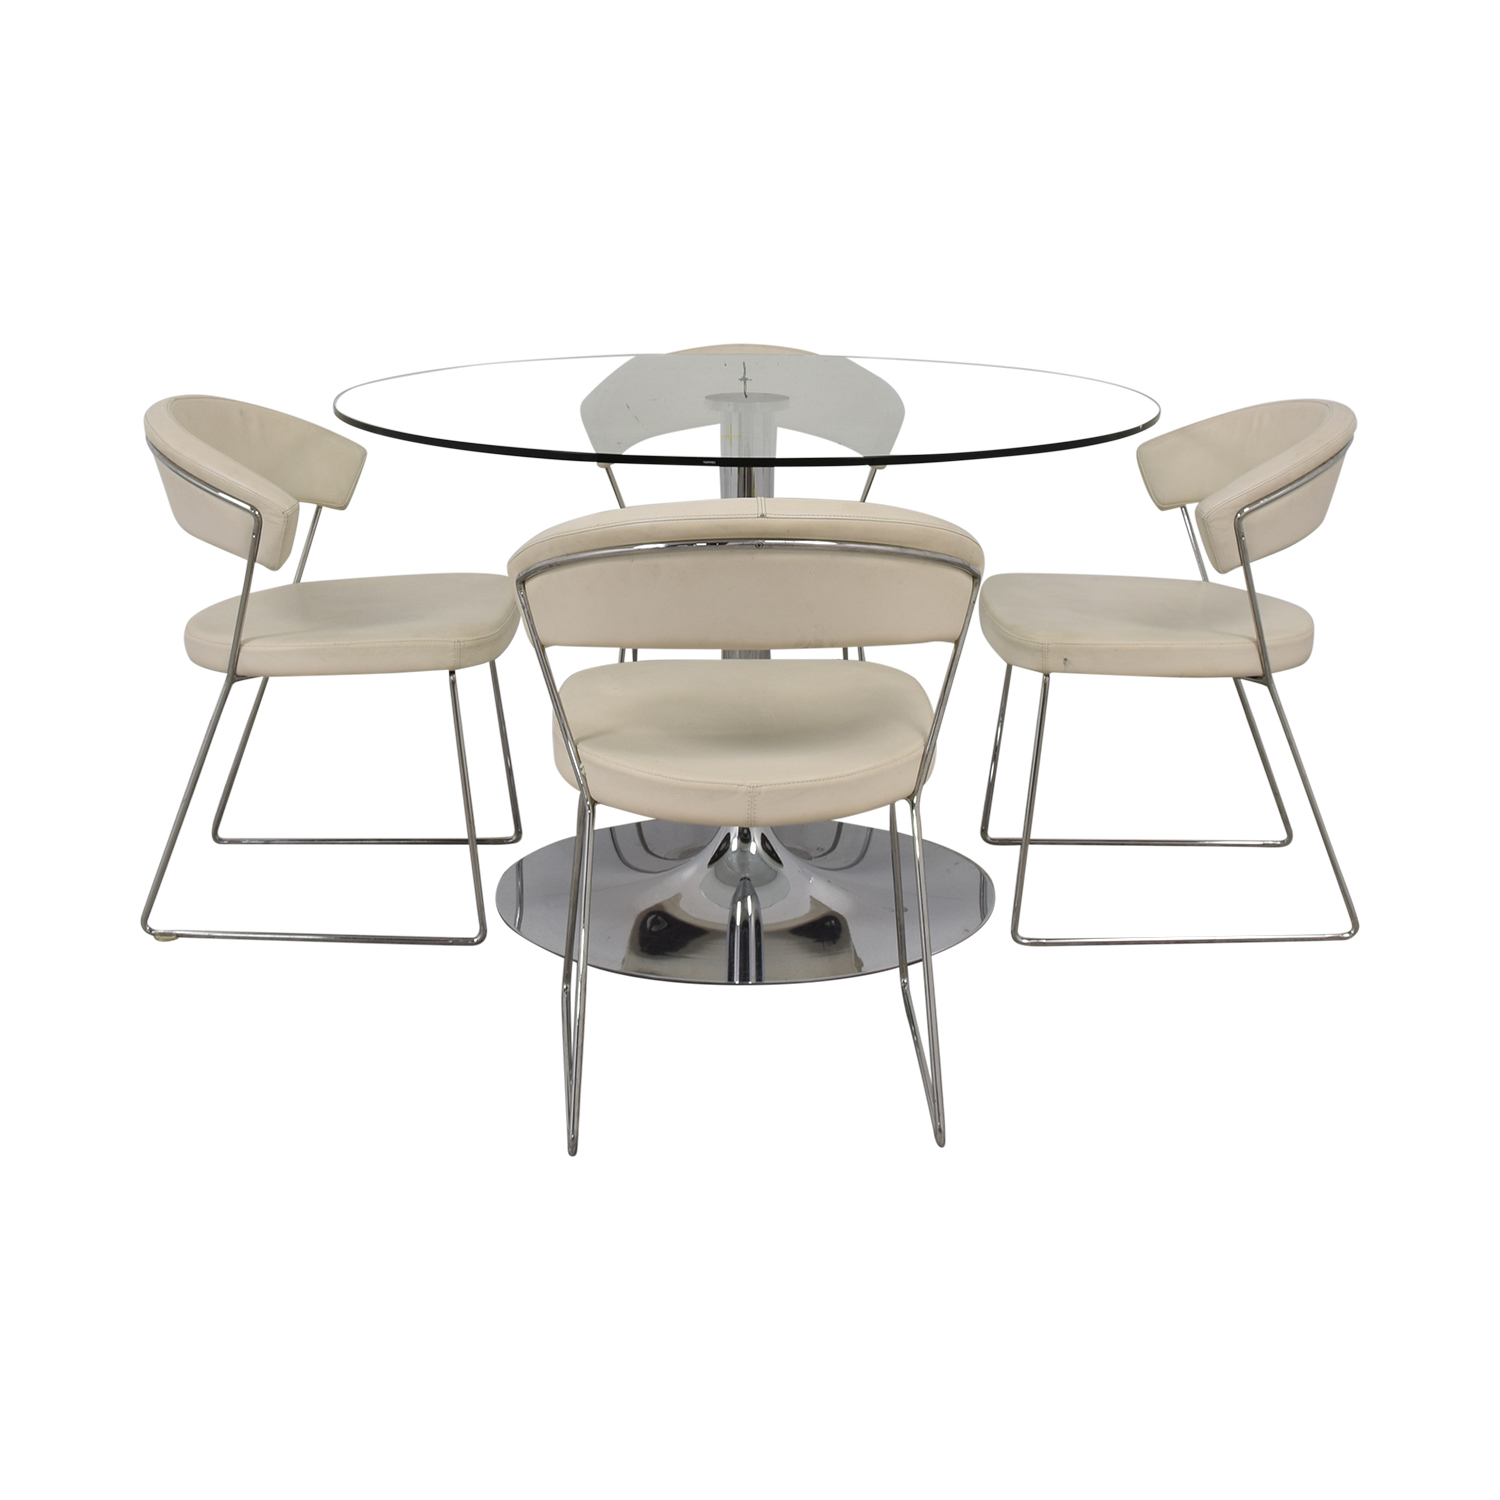 Glass Dining Table And Chairs 81 Off Calligaris Calligaris Planet Glass Dining Table With Calligaris New York Chairs Tables